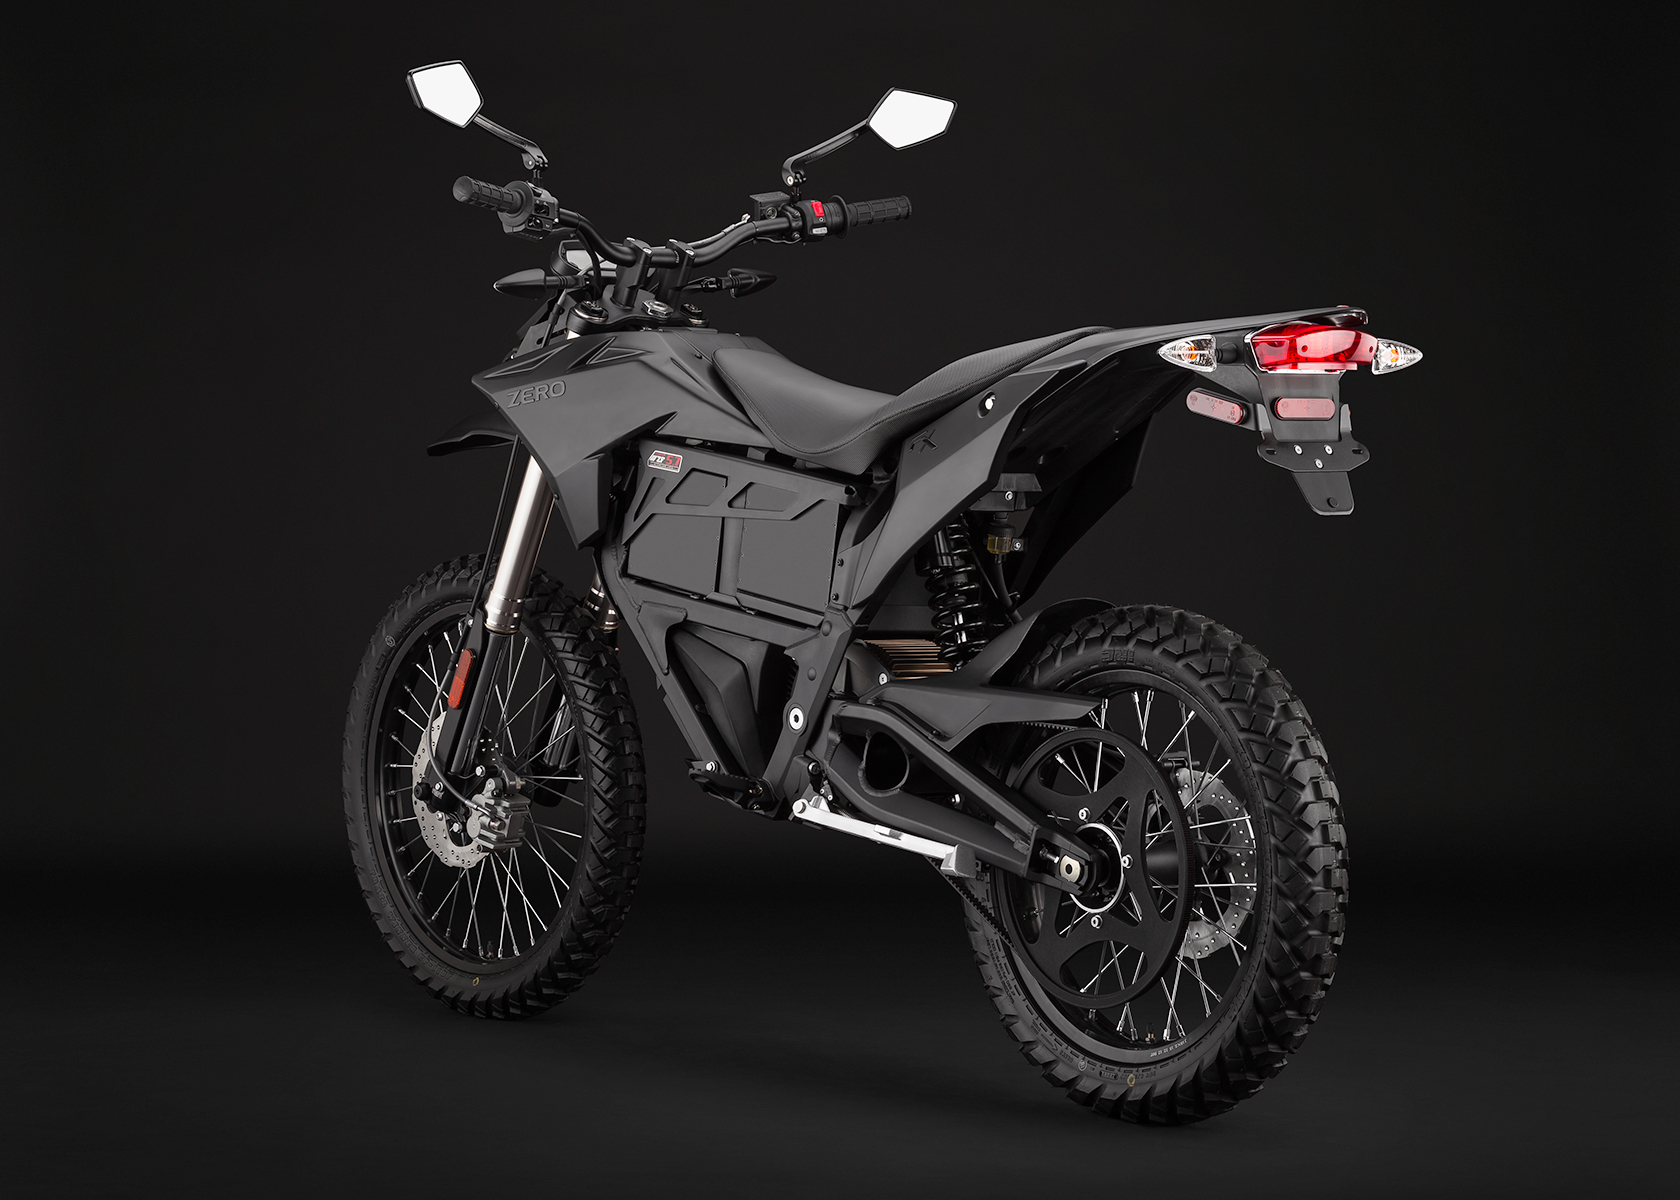 '.2014 Zero FX Electric Motorcycle: Black Angle Left.'